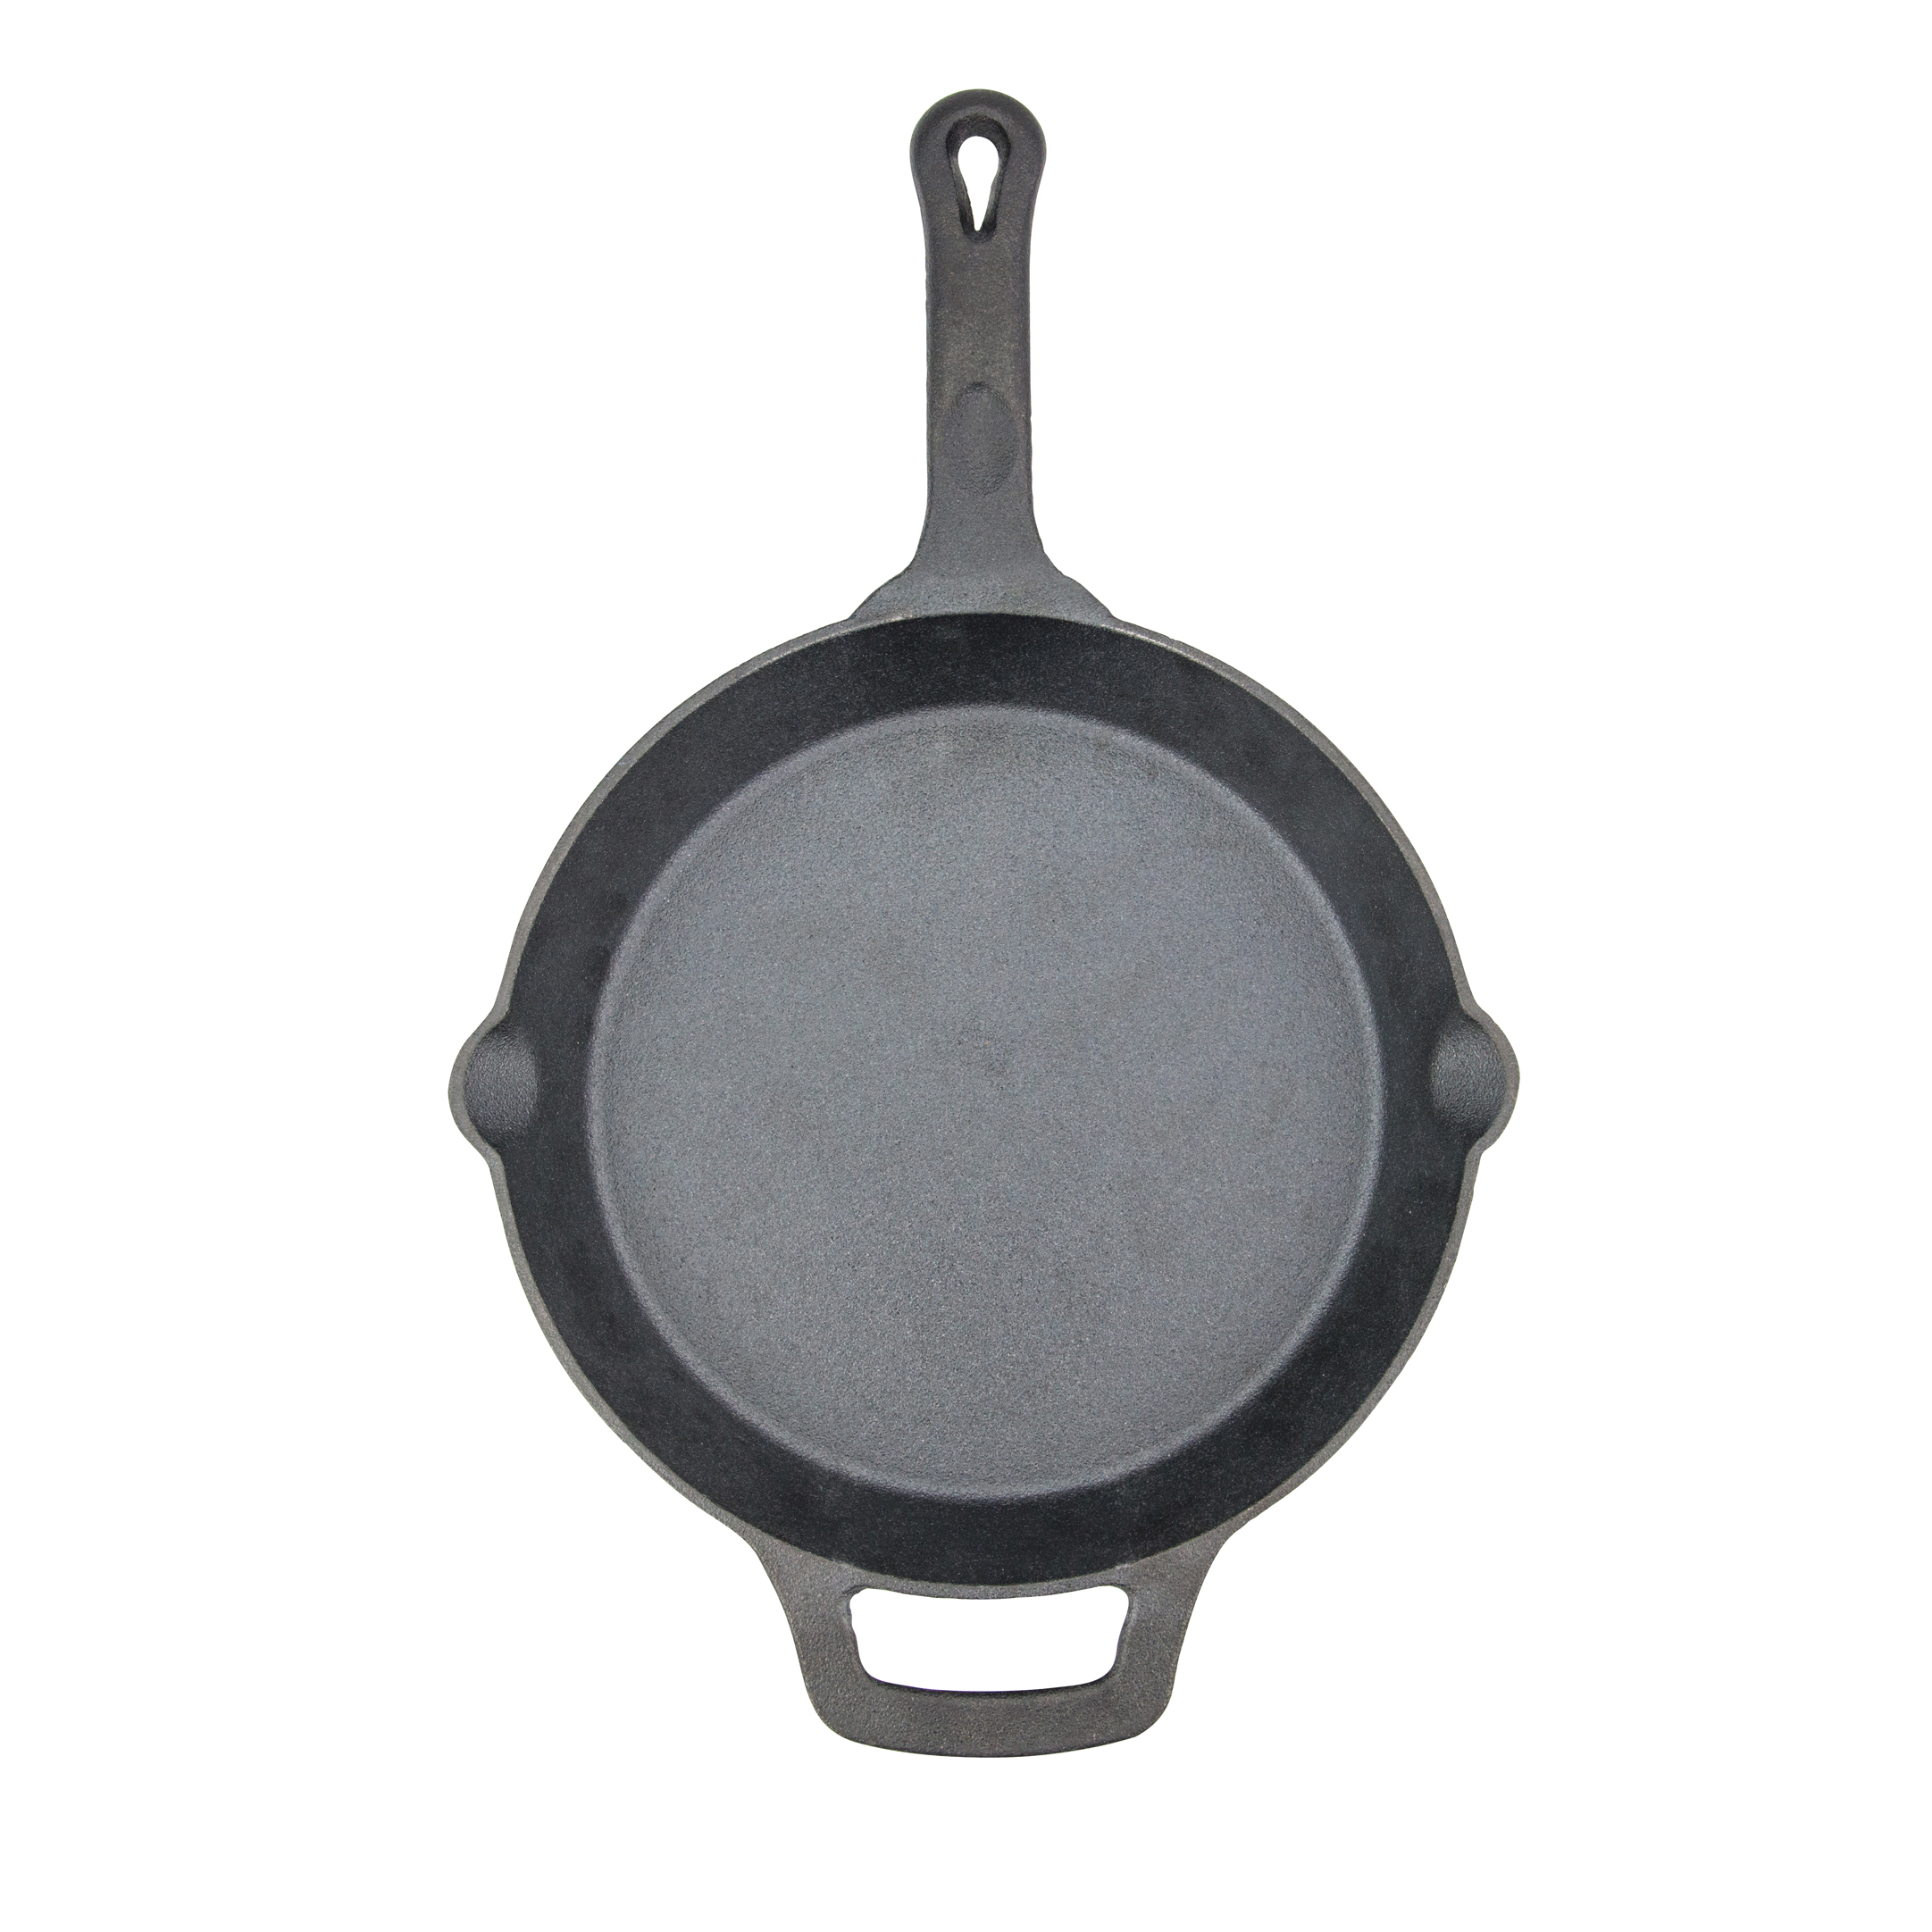 Winco CAST-10 cast iron fry pan